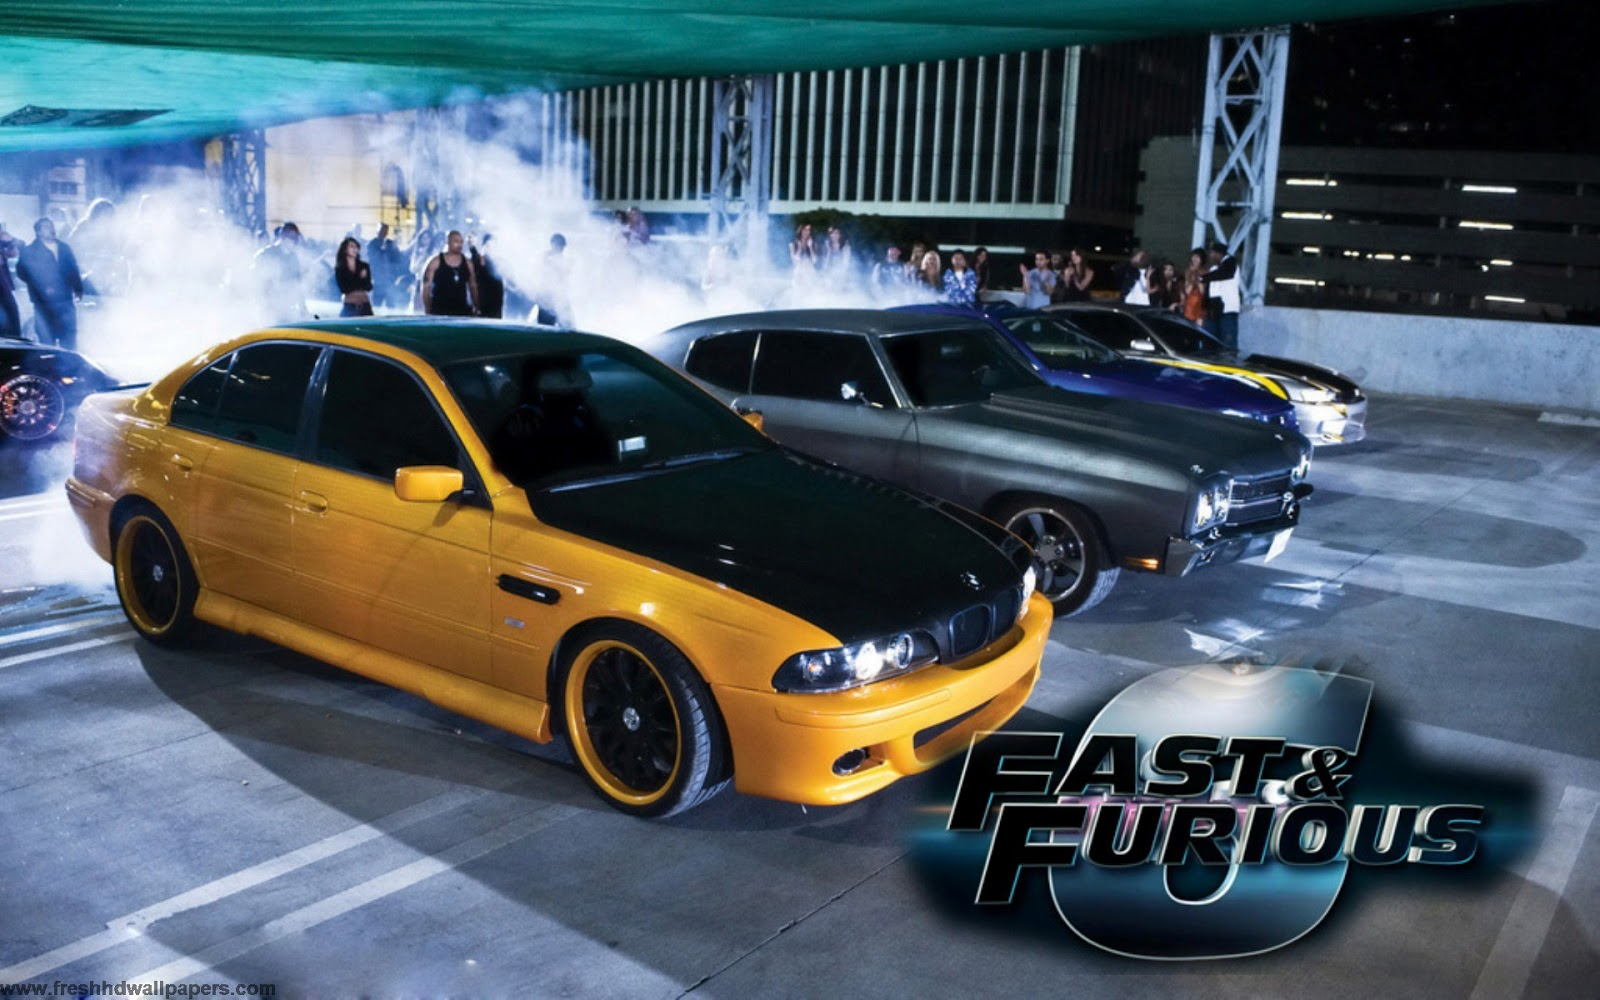 all cars from fast and furious 6 fresh hd wallpapers fast and furious 6 fresh - Fast And Furious 6 Cars Wallpapers